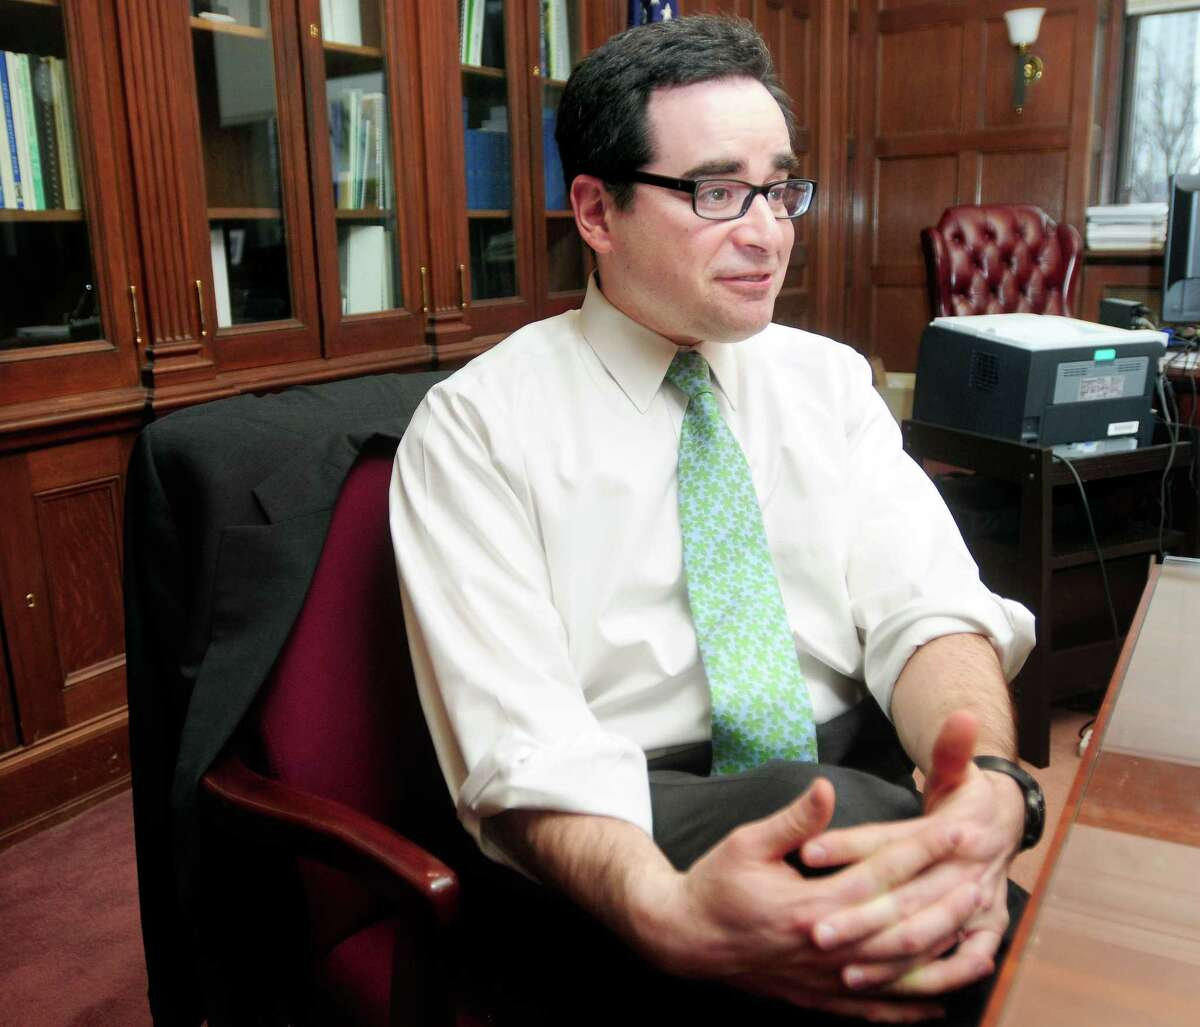 Robert Klee, selected by Gov. Dannel P. Malloy to be the next DEEP commissioner, is interviewed in his office in Hartford Wednesday.